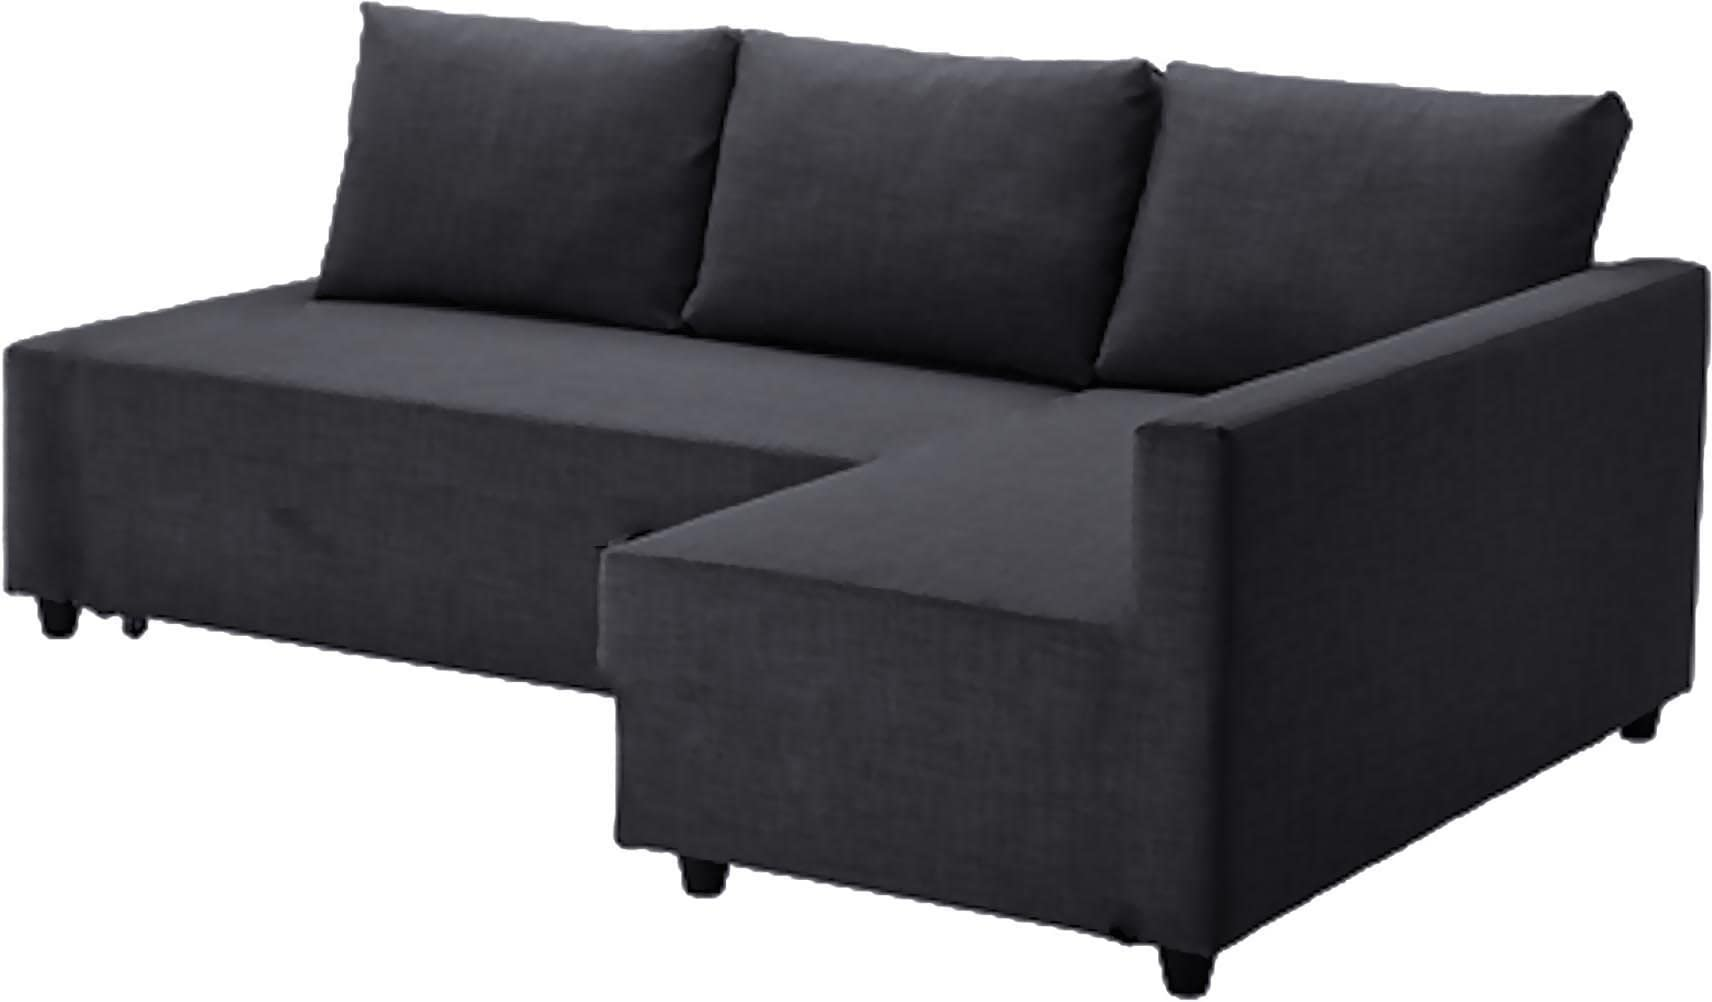 The Dark Gray Friheten Thick Cotton Sofa Cover Replacement is Custom Made for Ikea Friheten Sofa  sc 1 st  Amazon.com : sofa cover sectional - Sectionals, Sofas & Couches